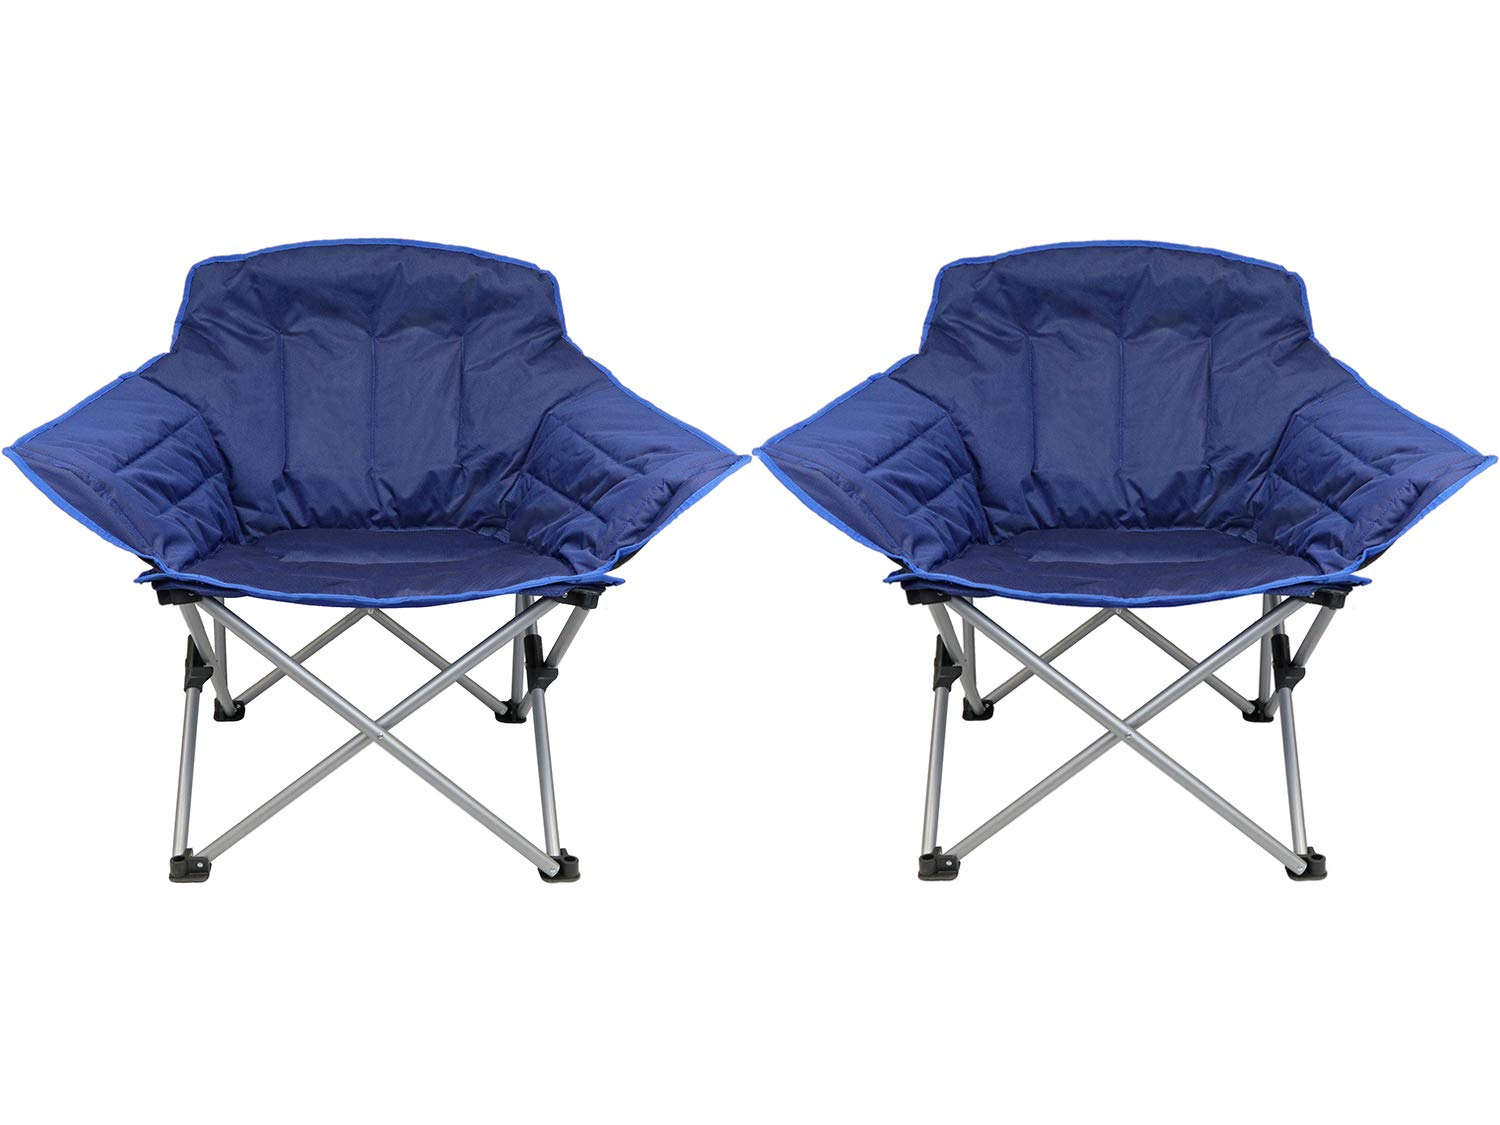 Zenithen Limited Guidesman Padded Folding Chair Blue, Pack of 2